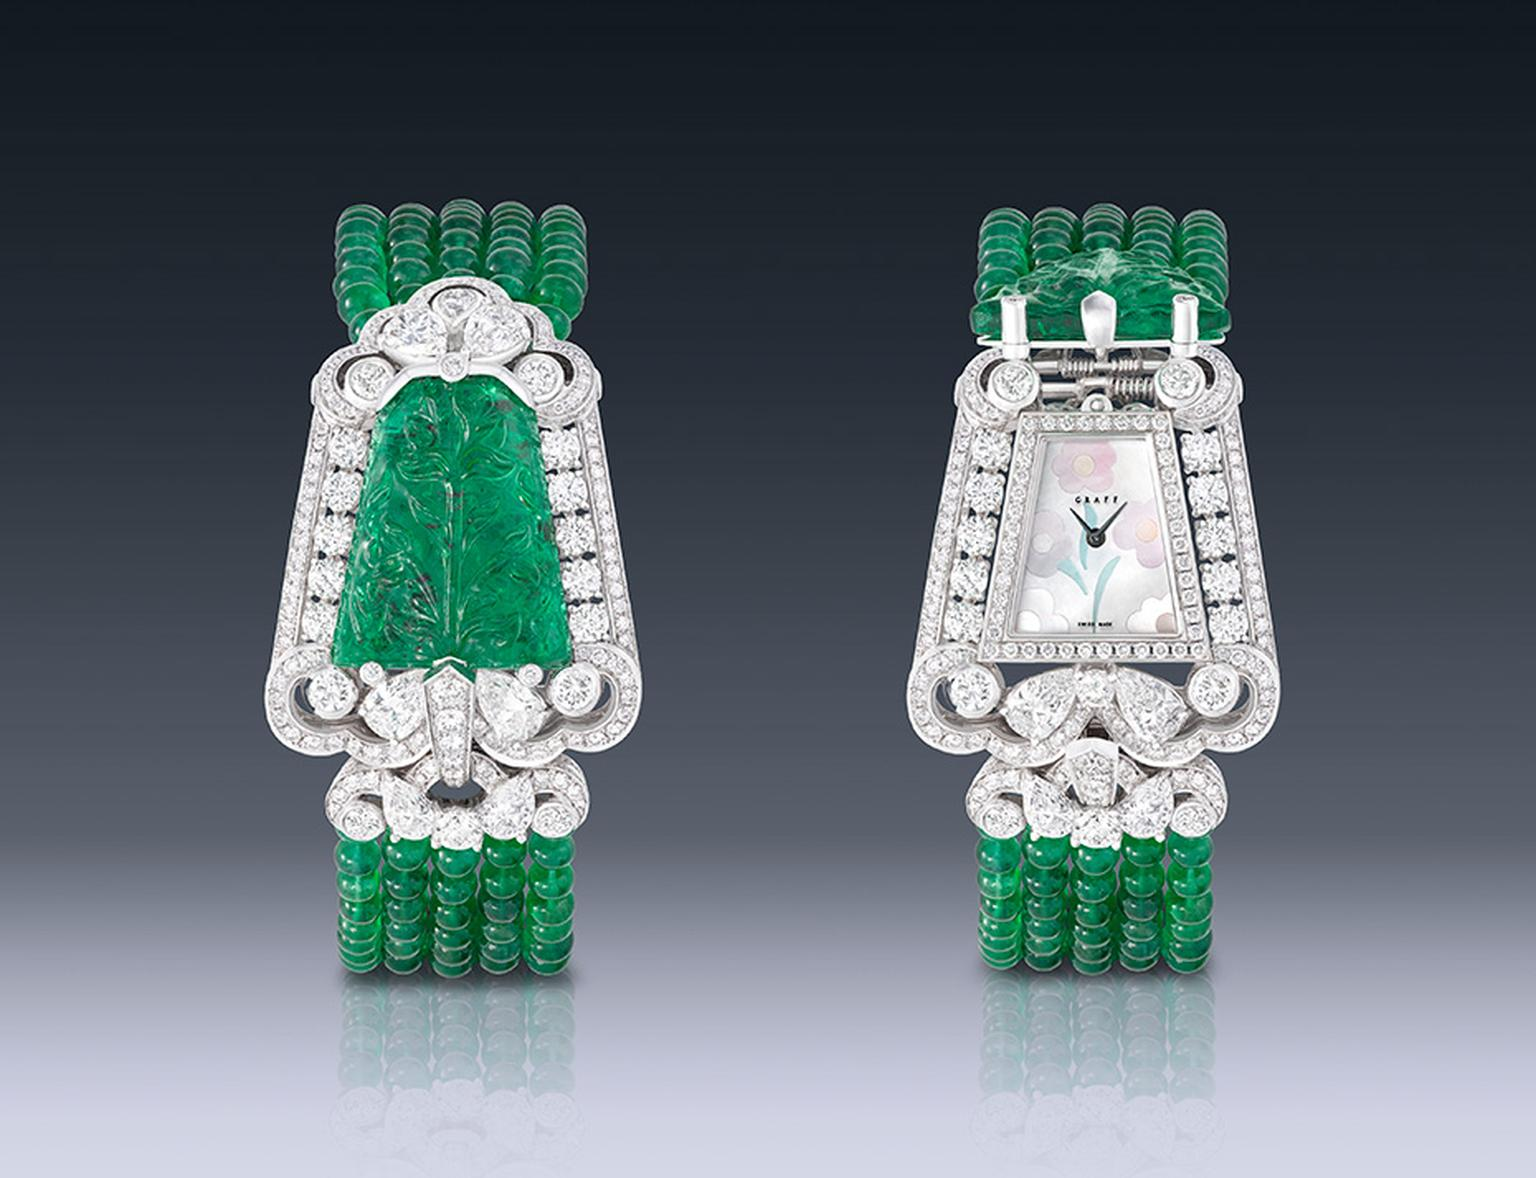 Graff carved emerald watch featuring diamonds.